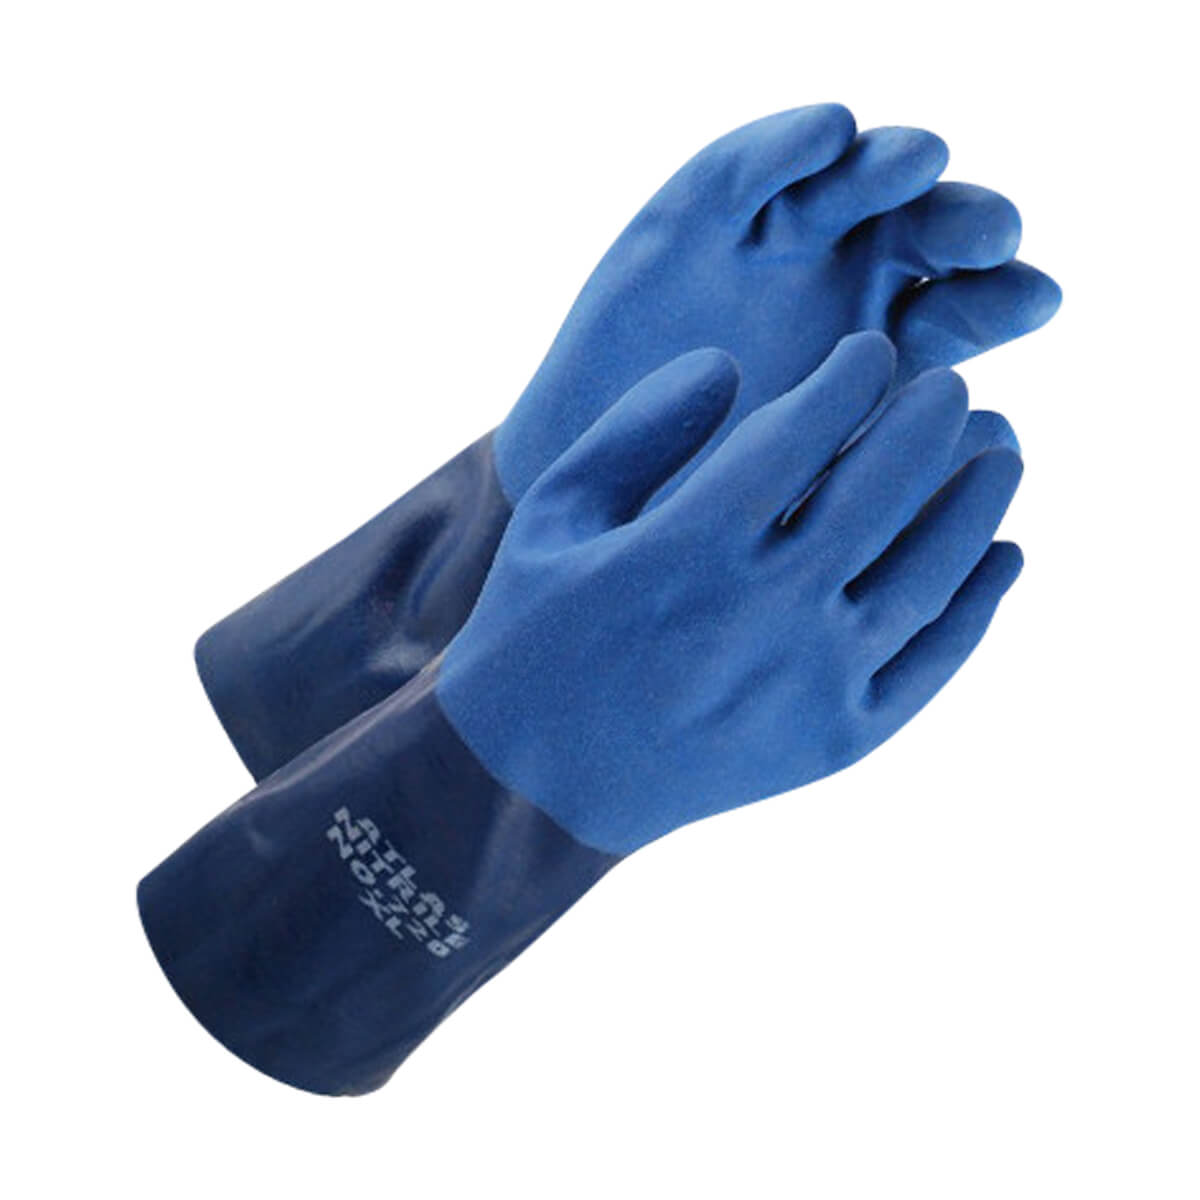 Atlas Nitrile Professional Gloves